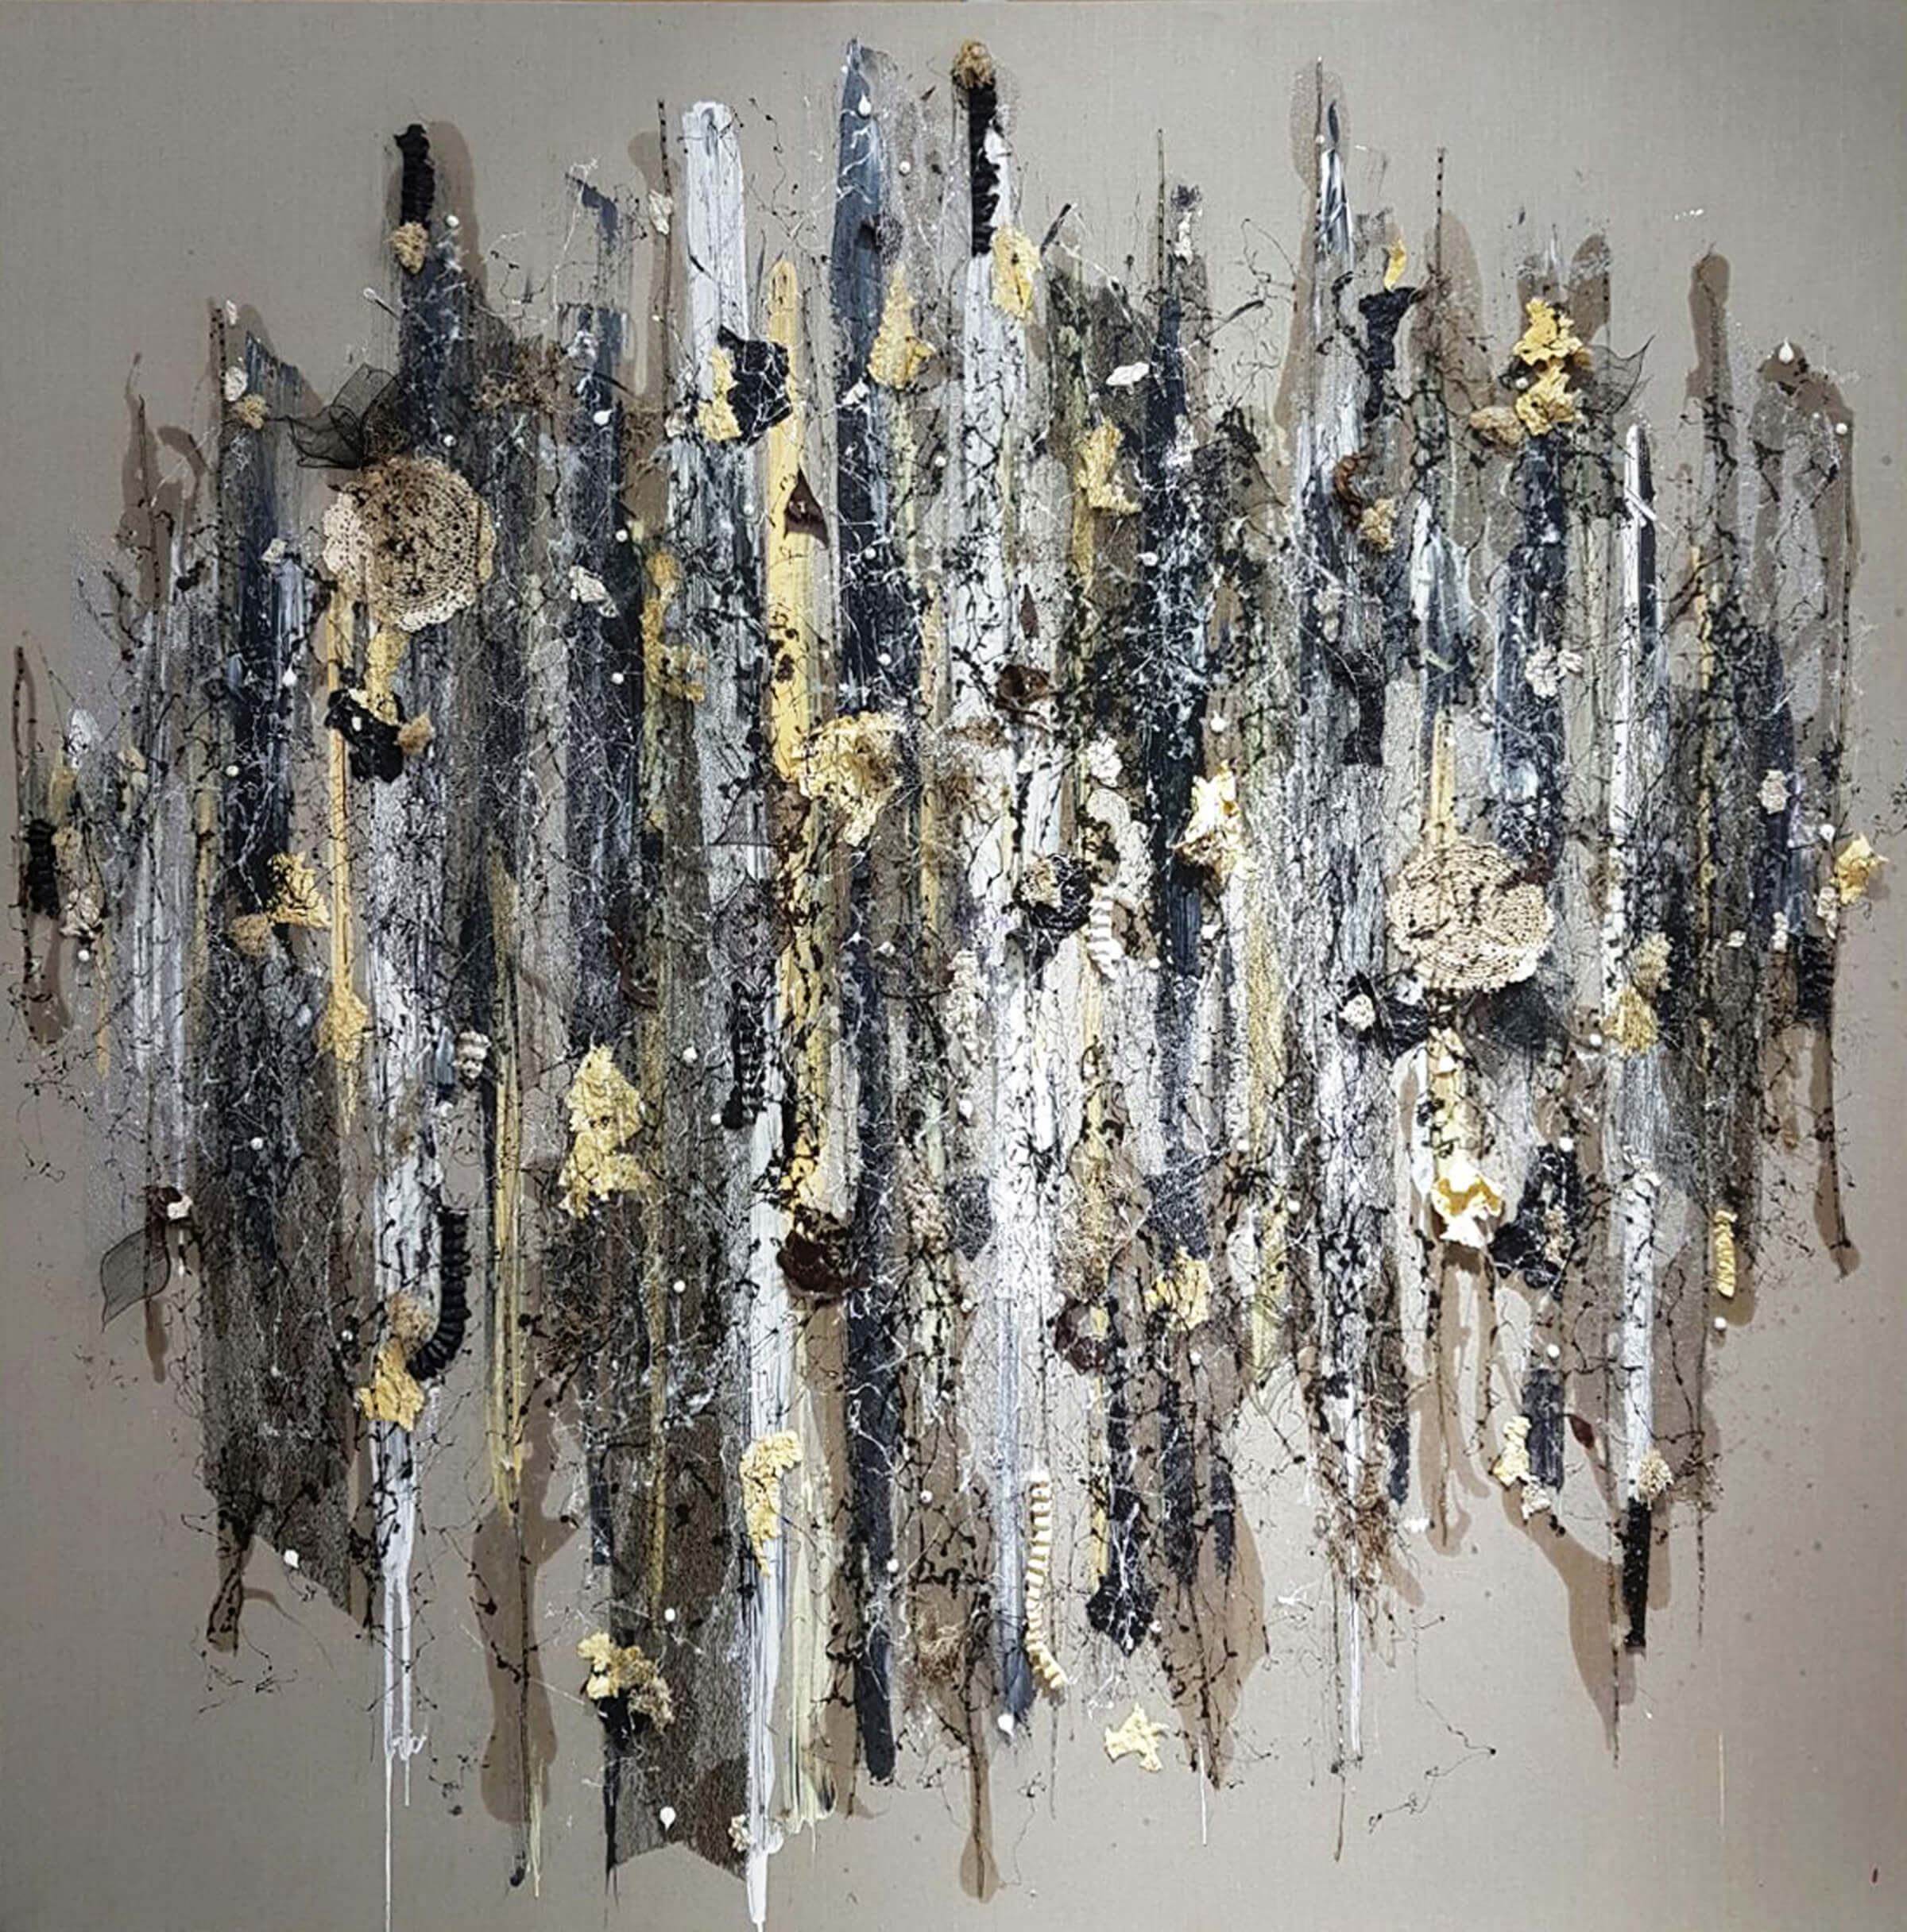 Laila Azra_Cerita Zaman_Mixed media on canvas_200x200cm_2017